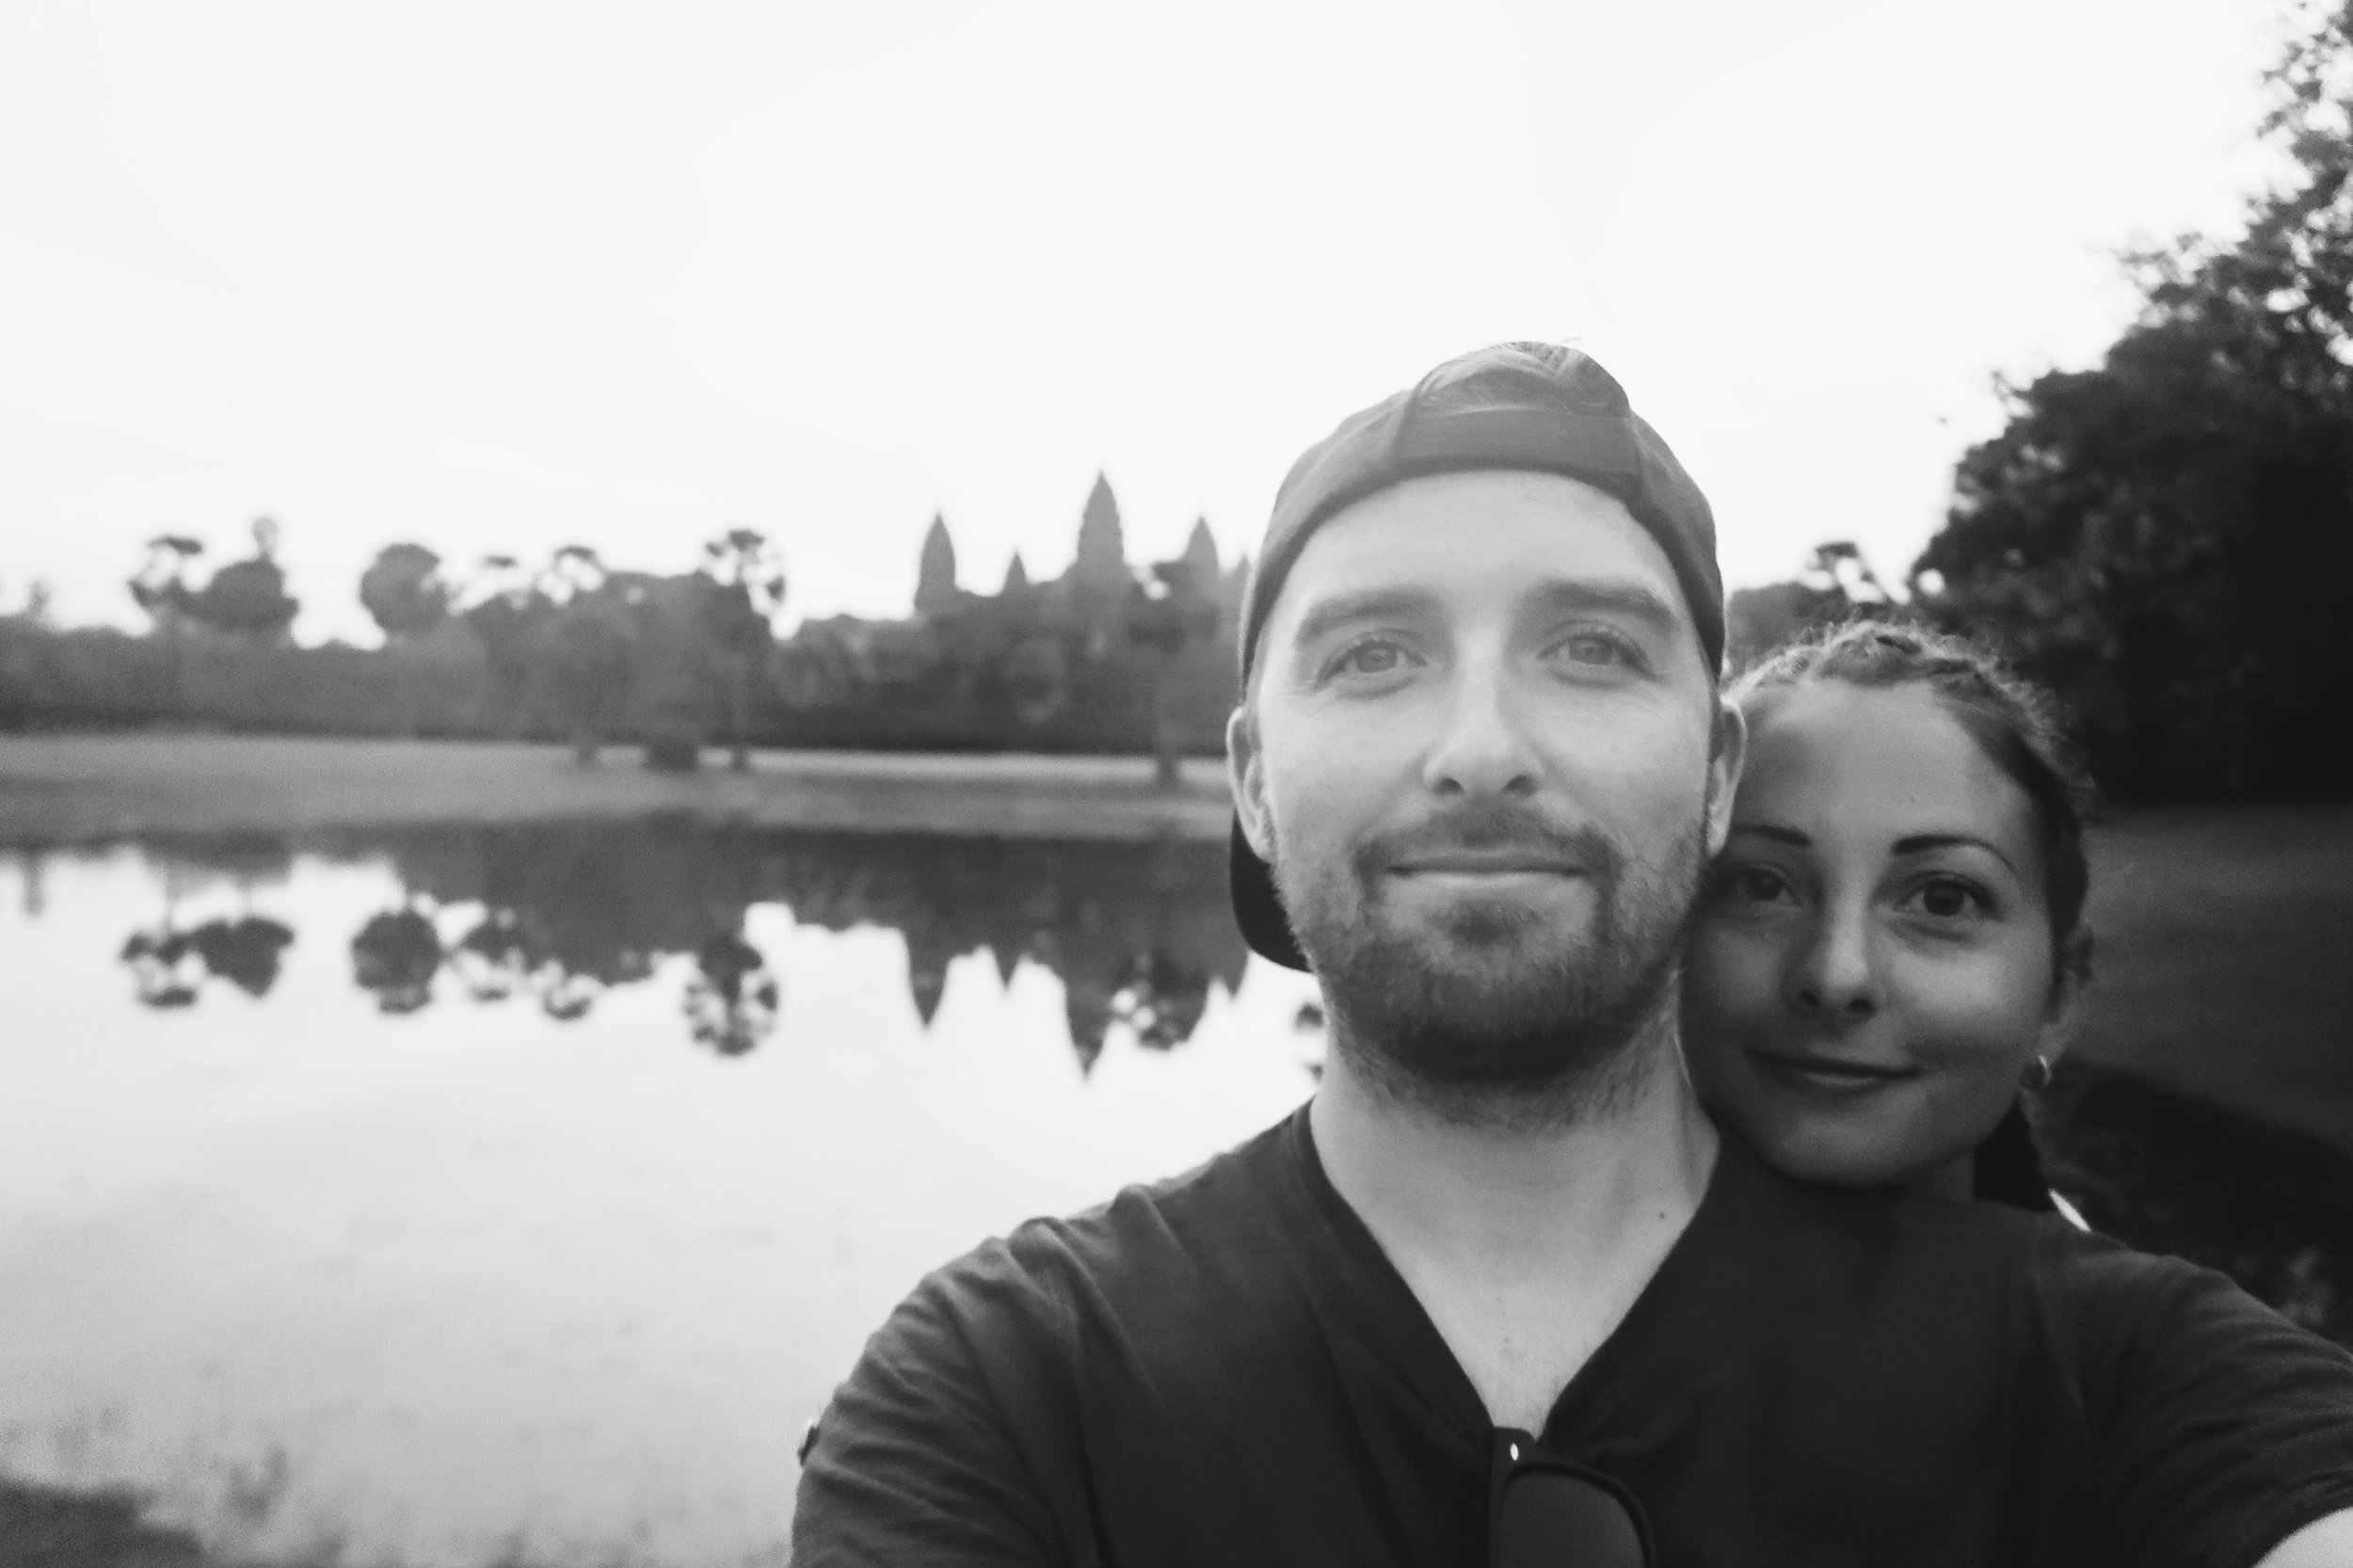 Angkor Wat - Me and Jade got up at 4:30am to see the sunrise at Angkor Wat, one of the most spectacular temples in the world, little did we know we would be joining about 3,000 other tourists at the same time.